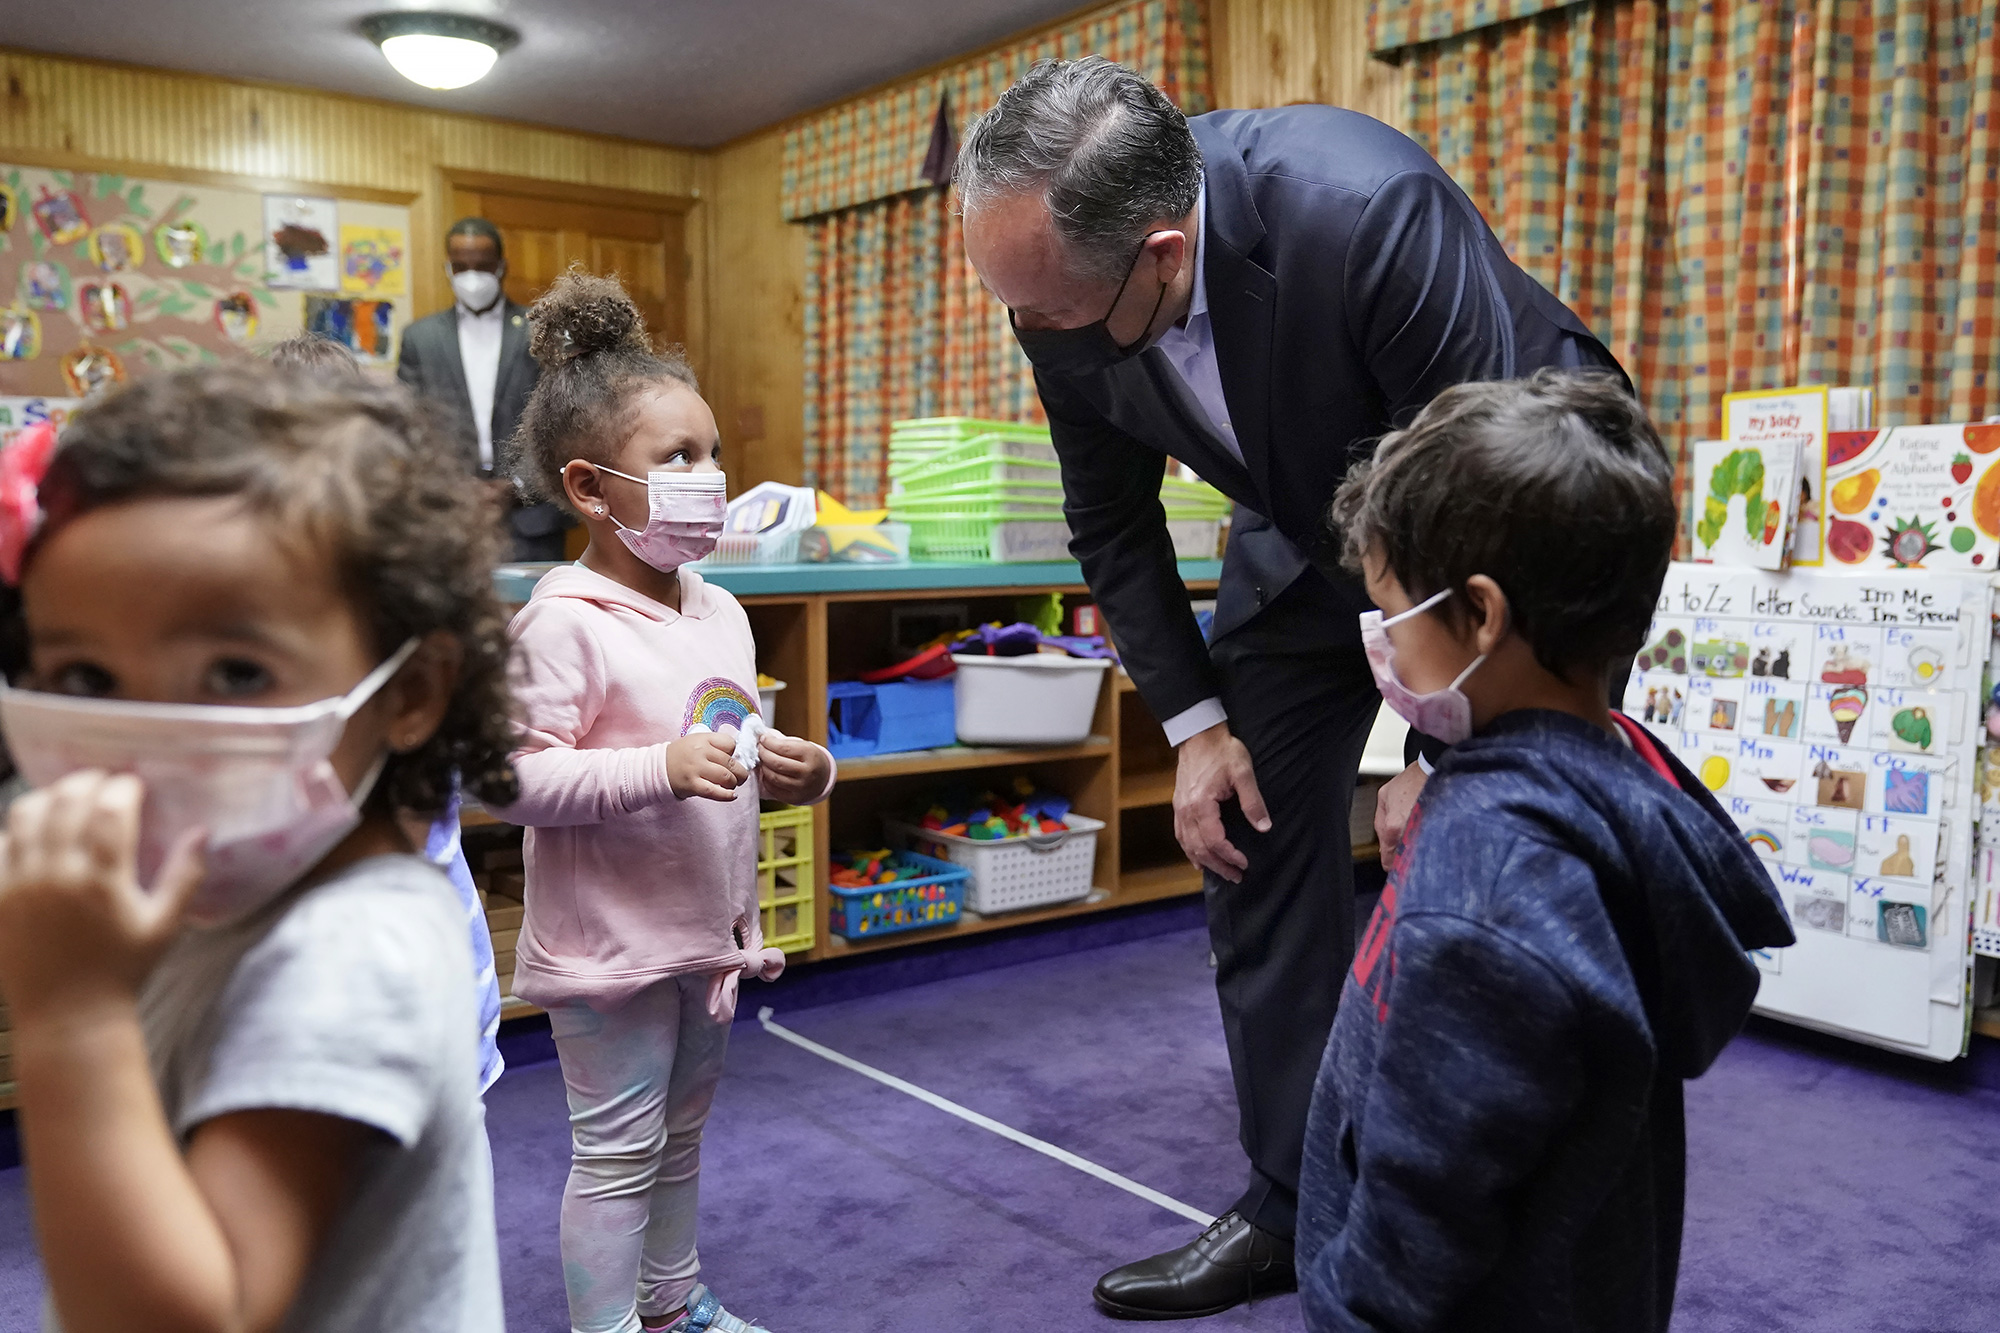 Douglas Emhoff, top right, husband of Vice President Kamala Harris, speaks to pre-school children after reading The Very Hungry Caterpillar, by Eric Carle, at Mother Hubbard Pre-School Center, in Milford, Mass. Emhoff visited the child care center to draw attention to the Biden administration's Build Back Better agenda Emhoff Massachusetts, Milford, United States - 20 Sep 2021